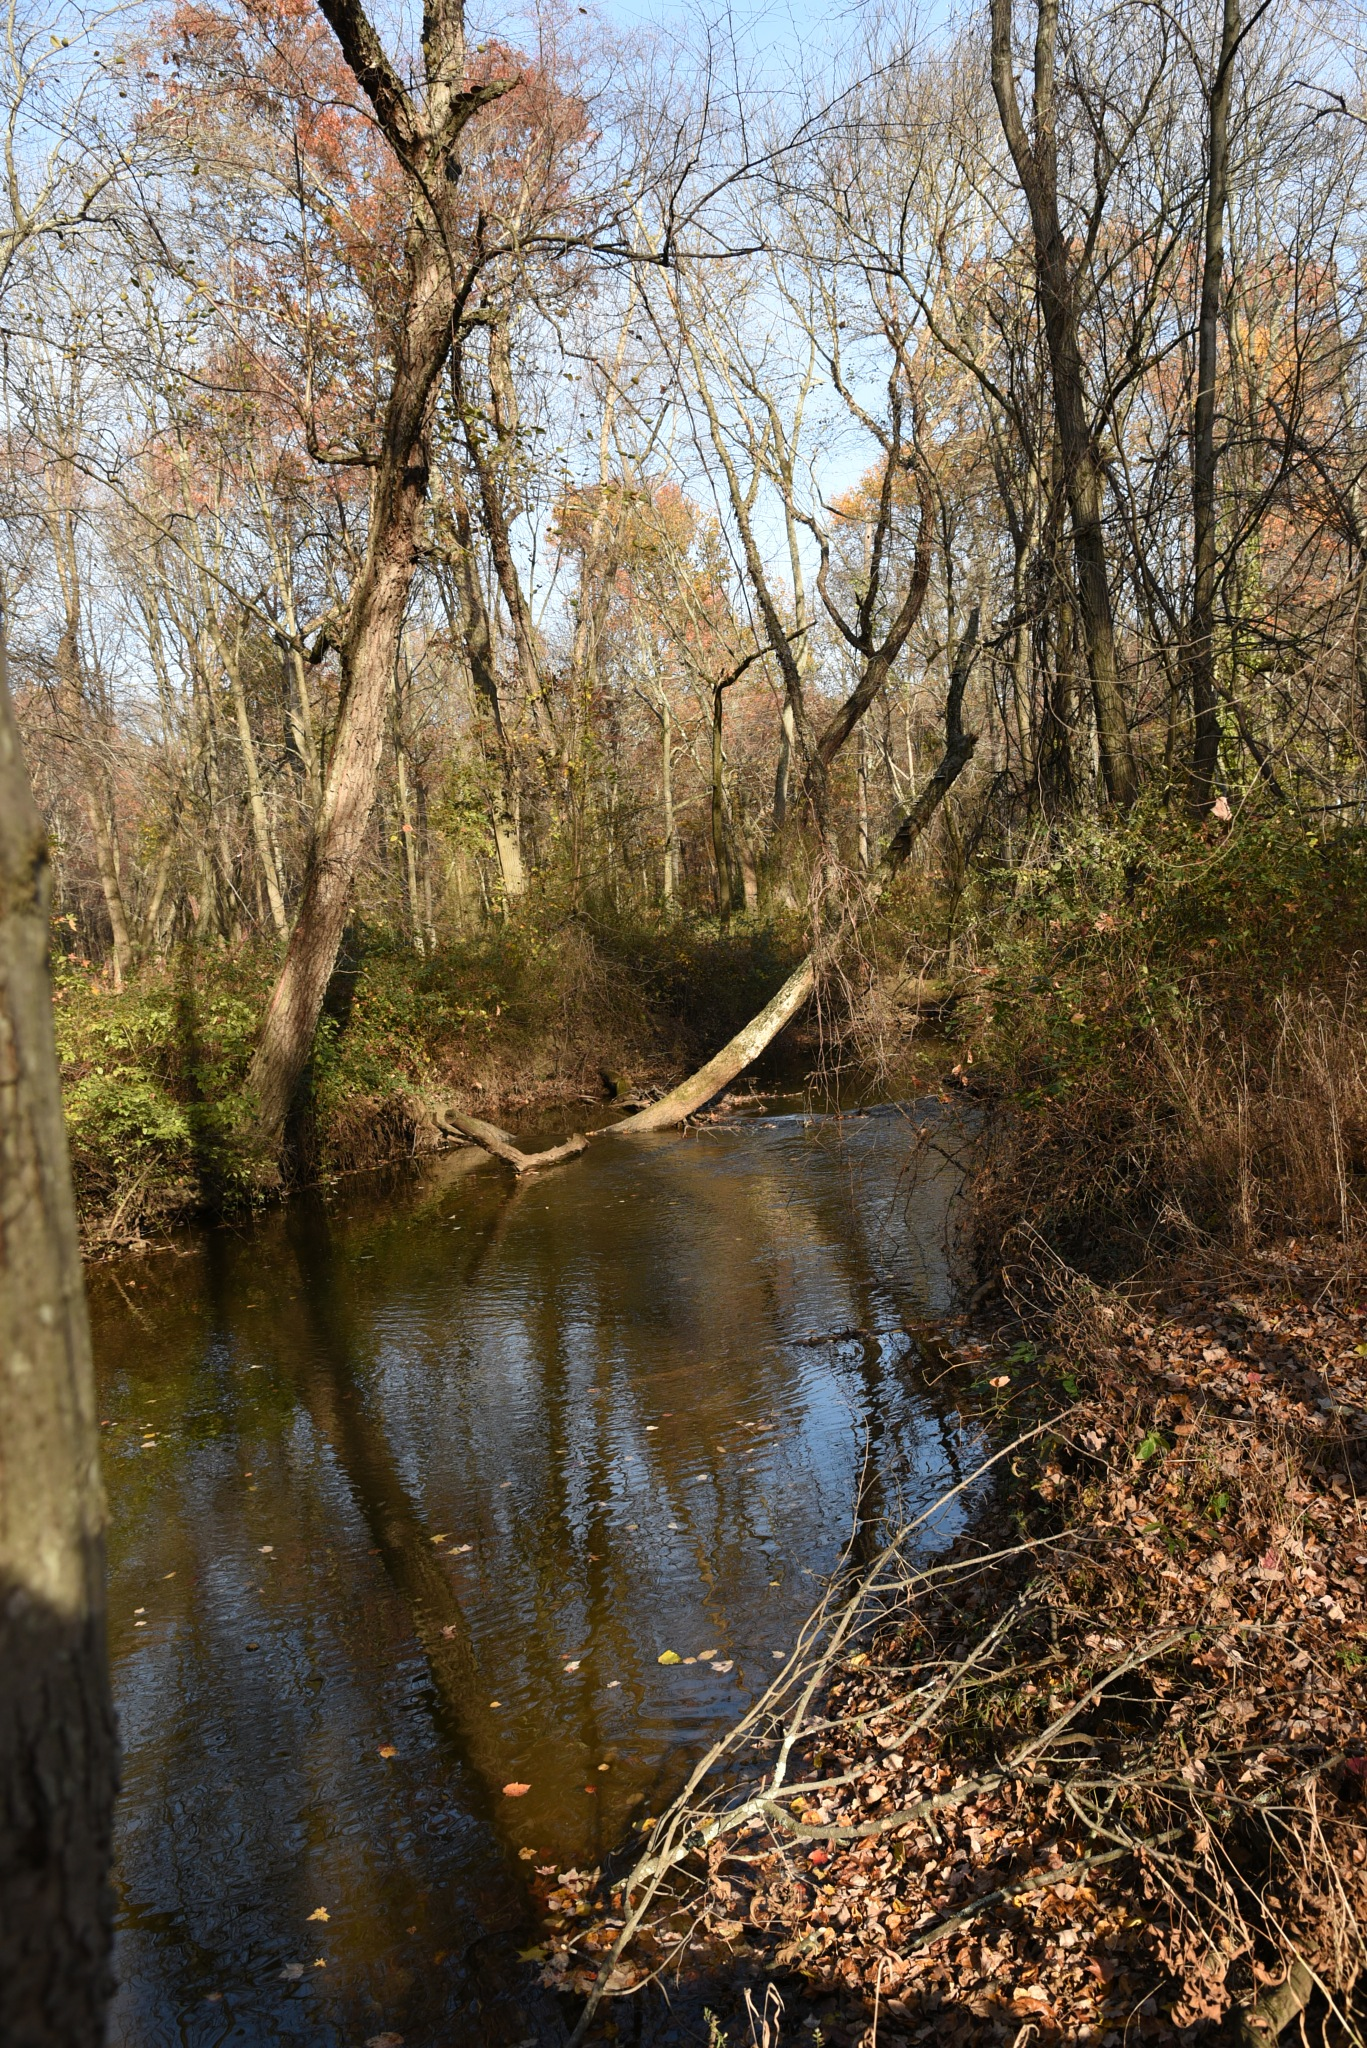 Van Nest Wildlife Refuge - Stream in refuge with bare trees on the banks by Vizzpat